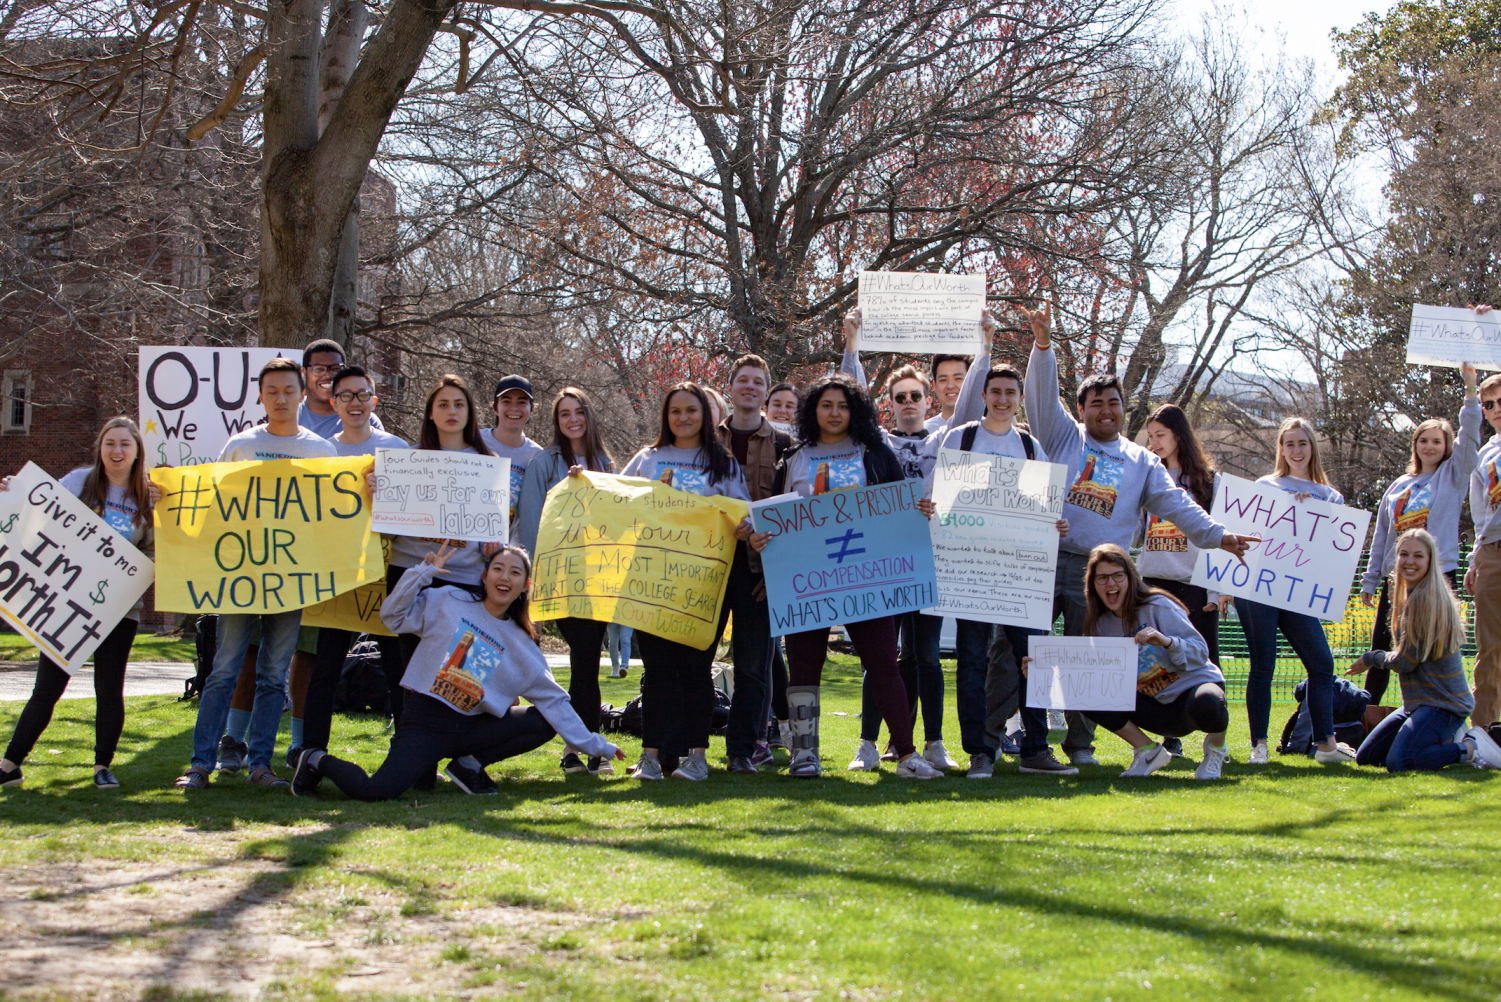 Tour guides petition for compensation on Alumni Lawn. (Photo by Madison Lindeman)